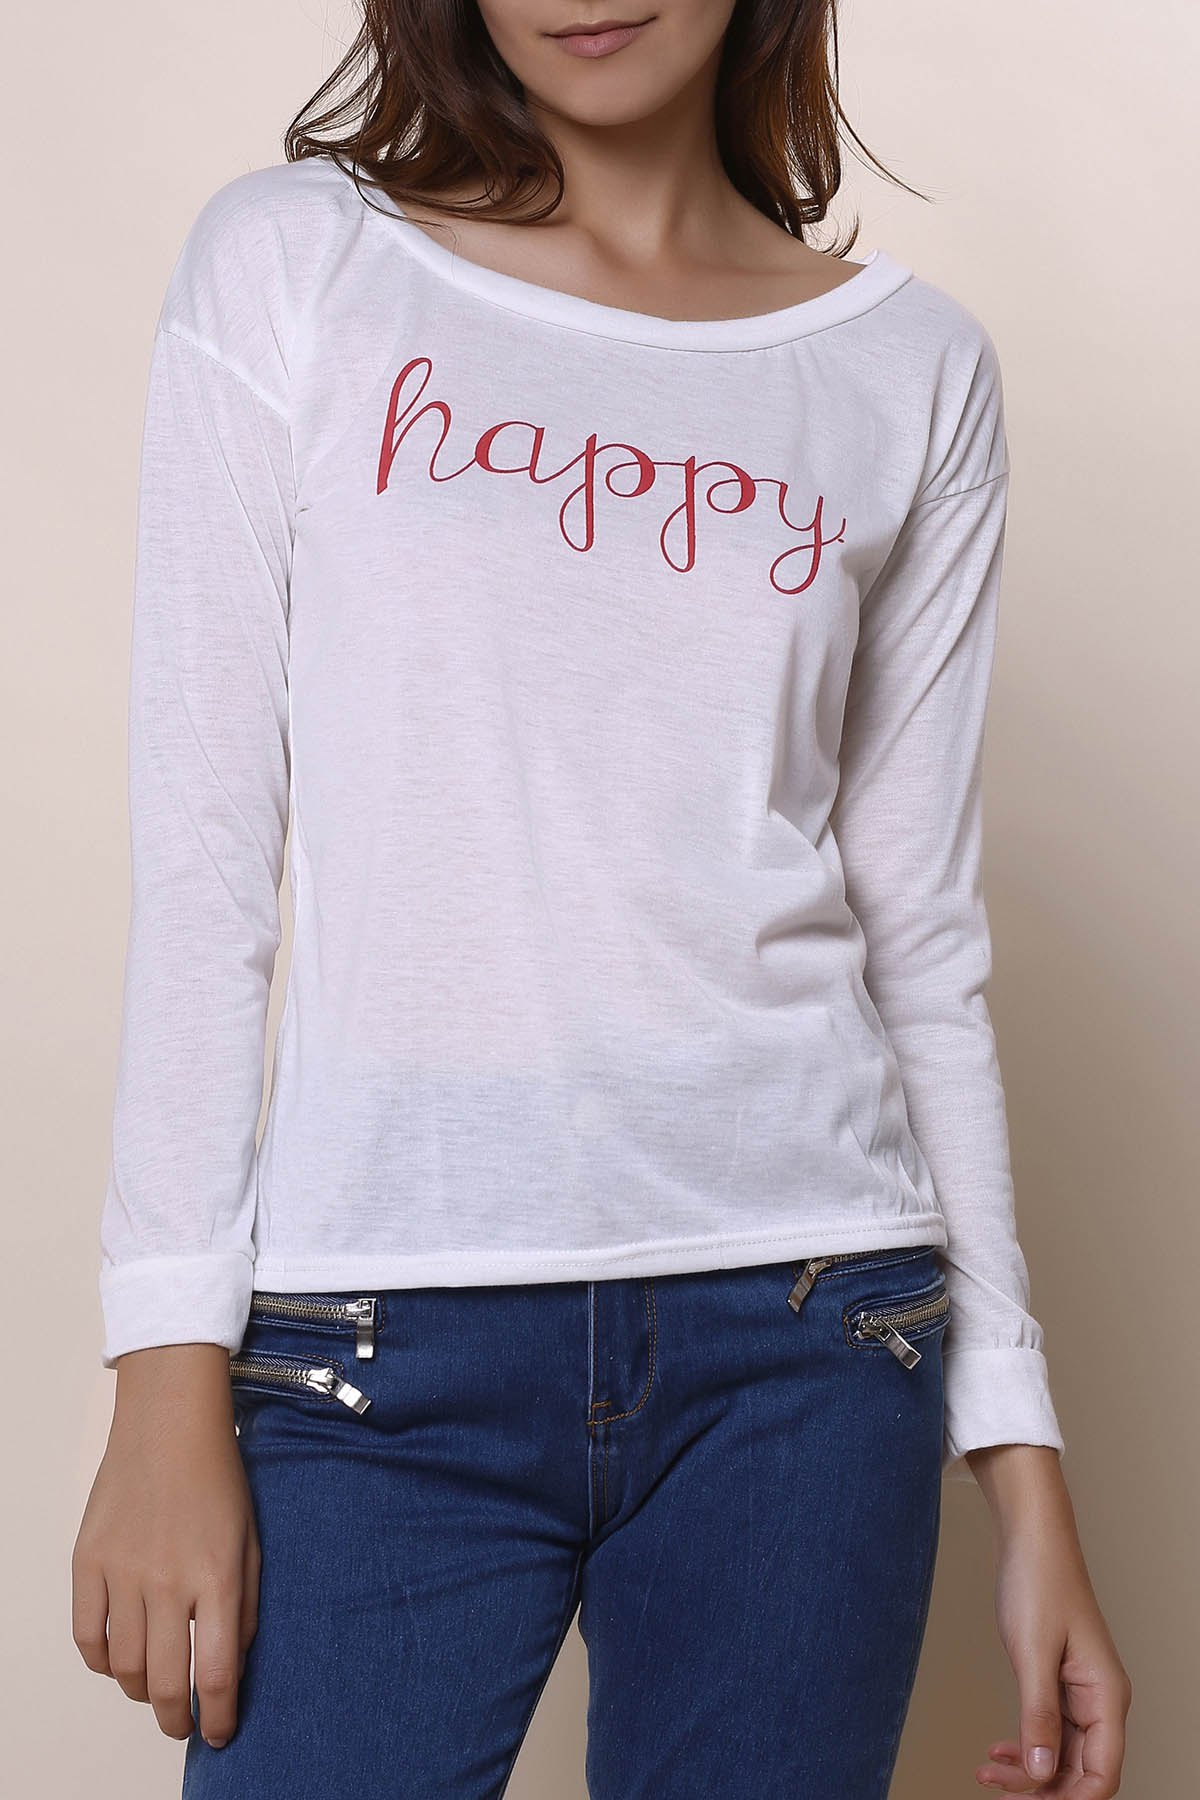 Stylish long sleeve scoop neck letter print t shirt tank for Scoop neck long sleeve shirt